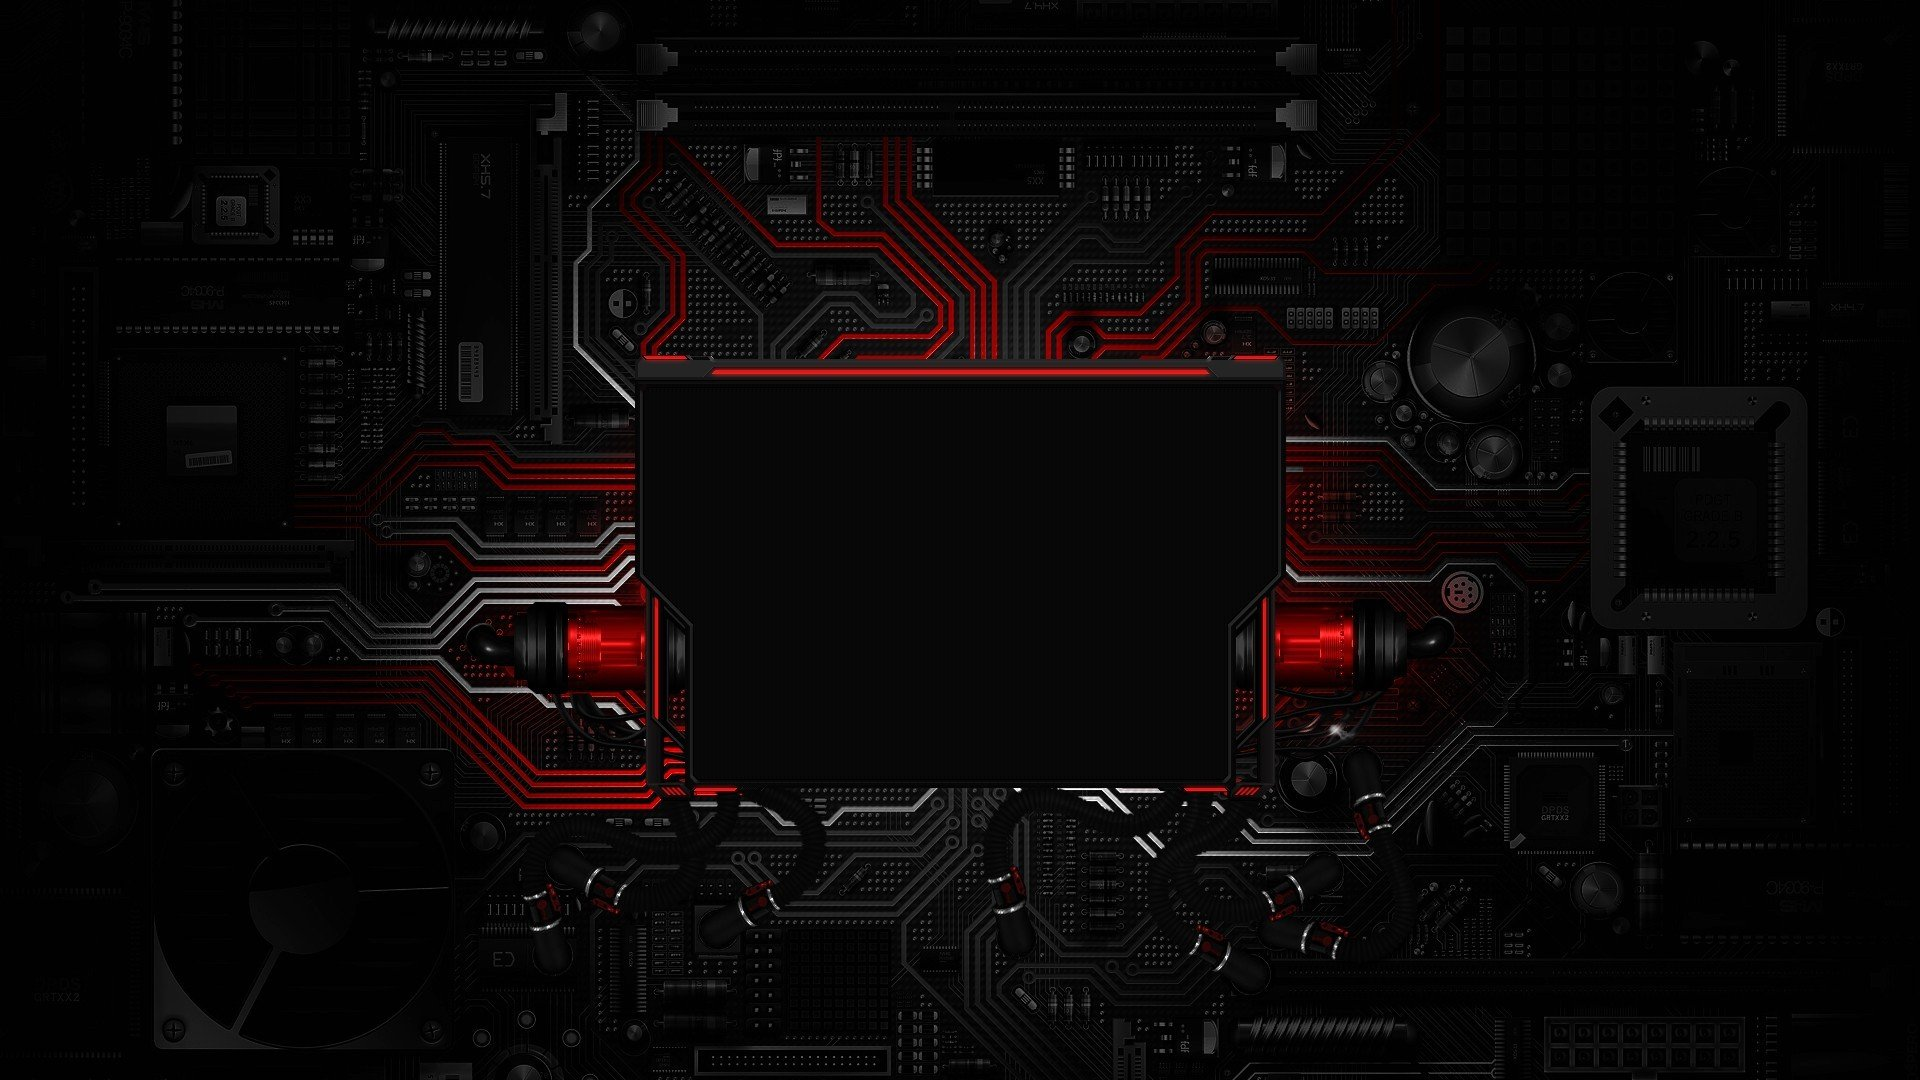 Circuits Electronics Hd Wallpapers Desktop And Mobile Images Photos